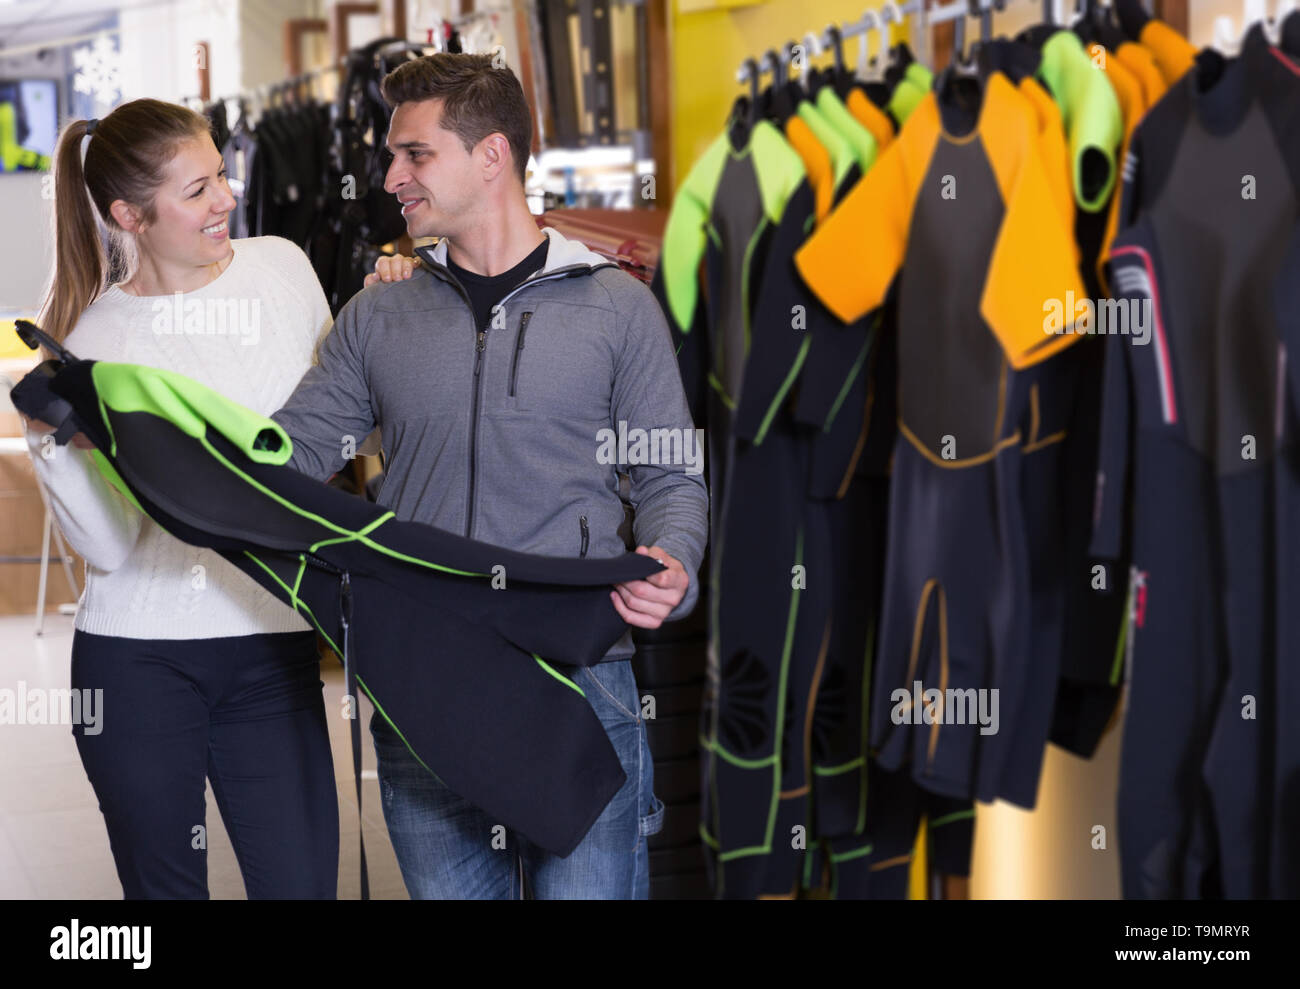 Girl seller is helping man choose new costume for diving in the store - Stock Image